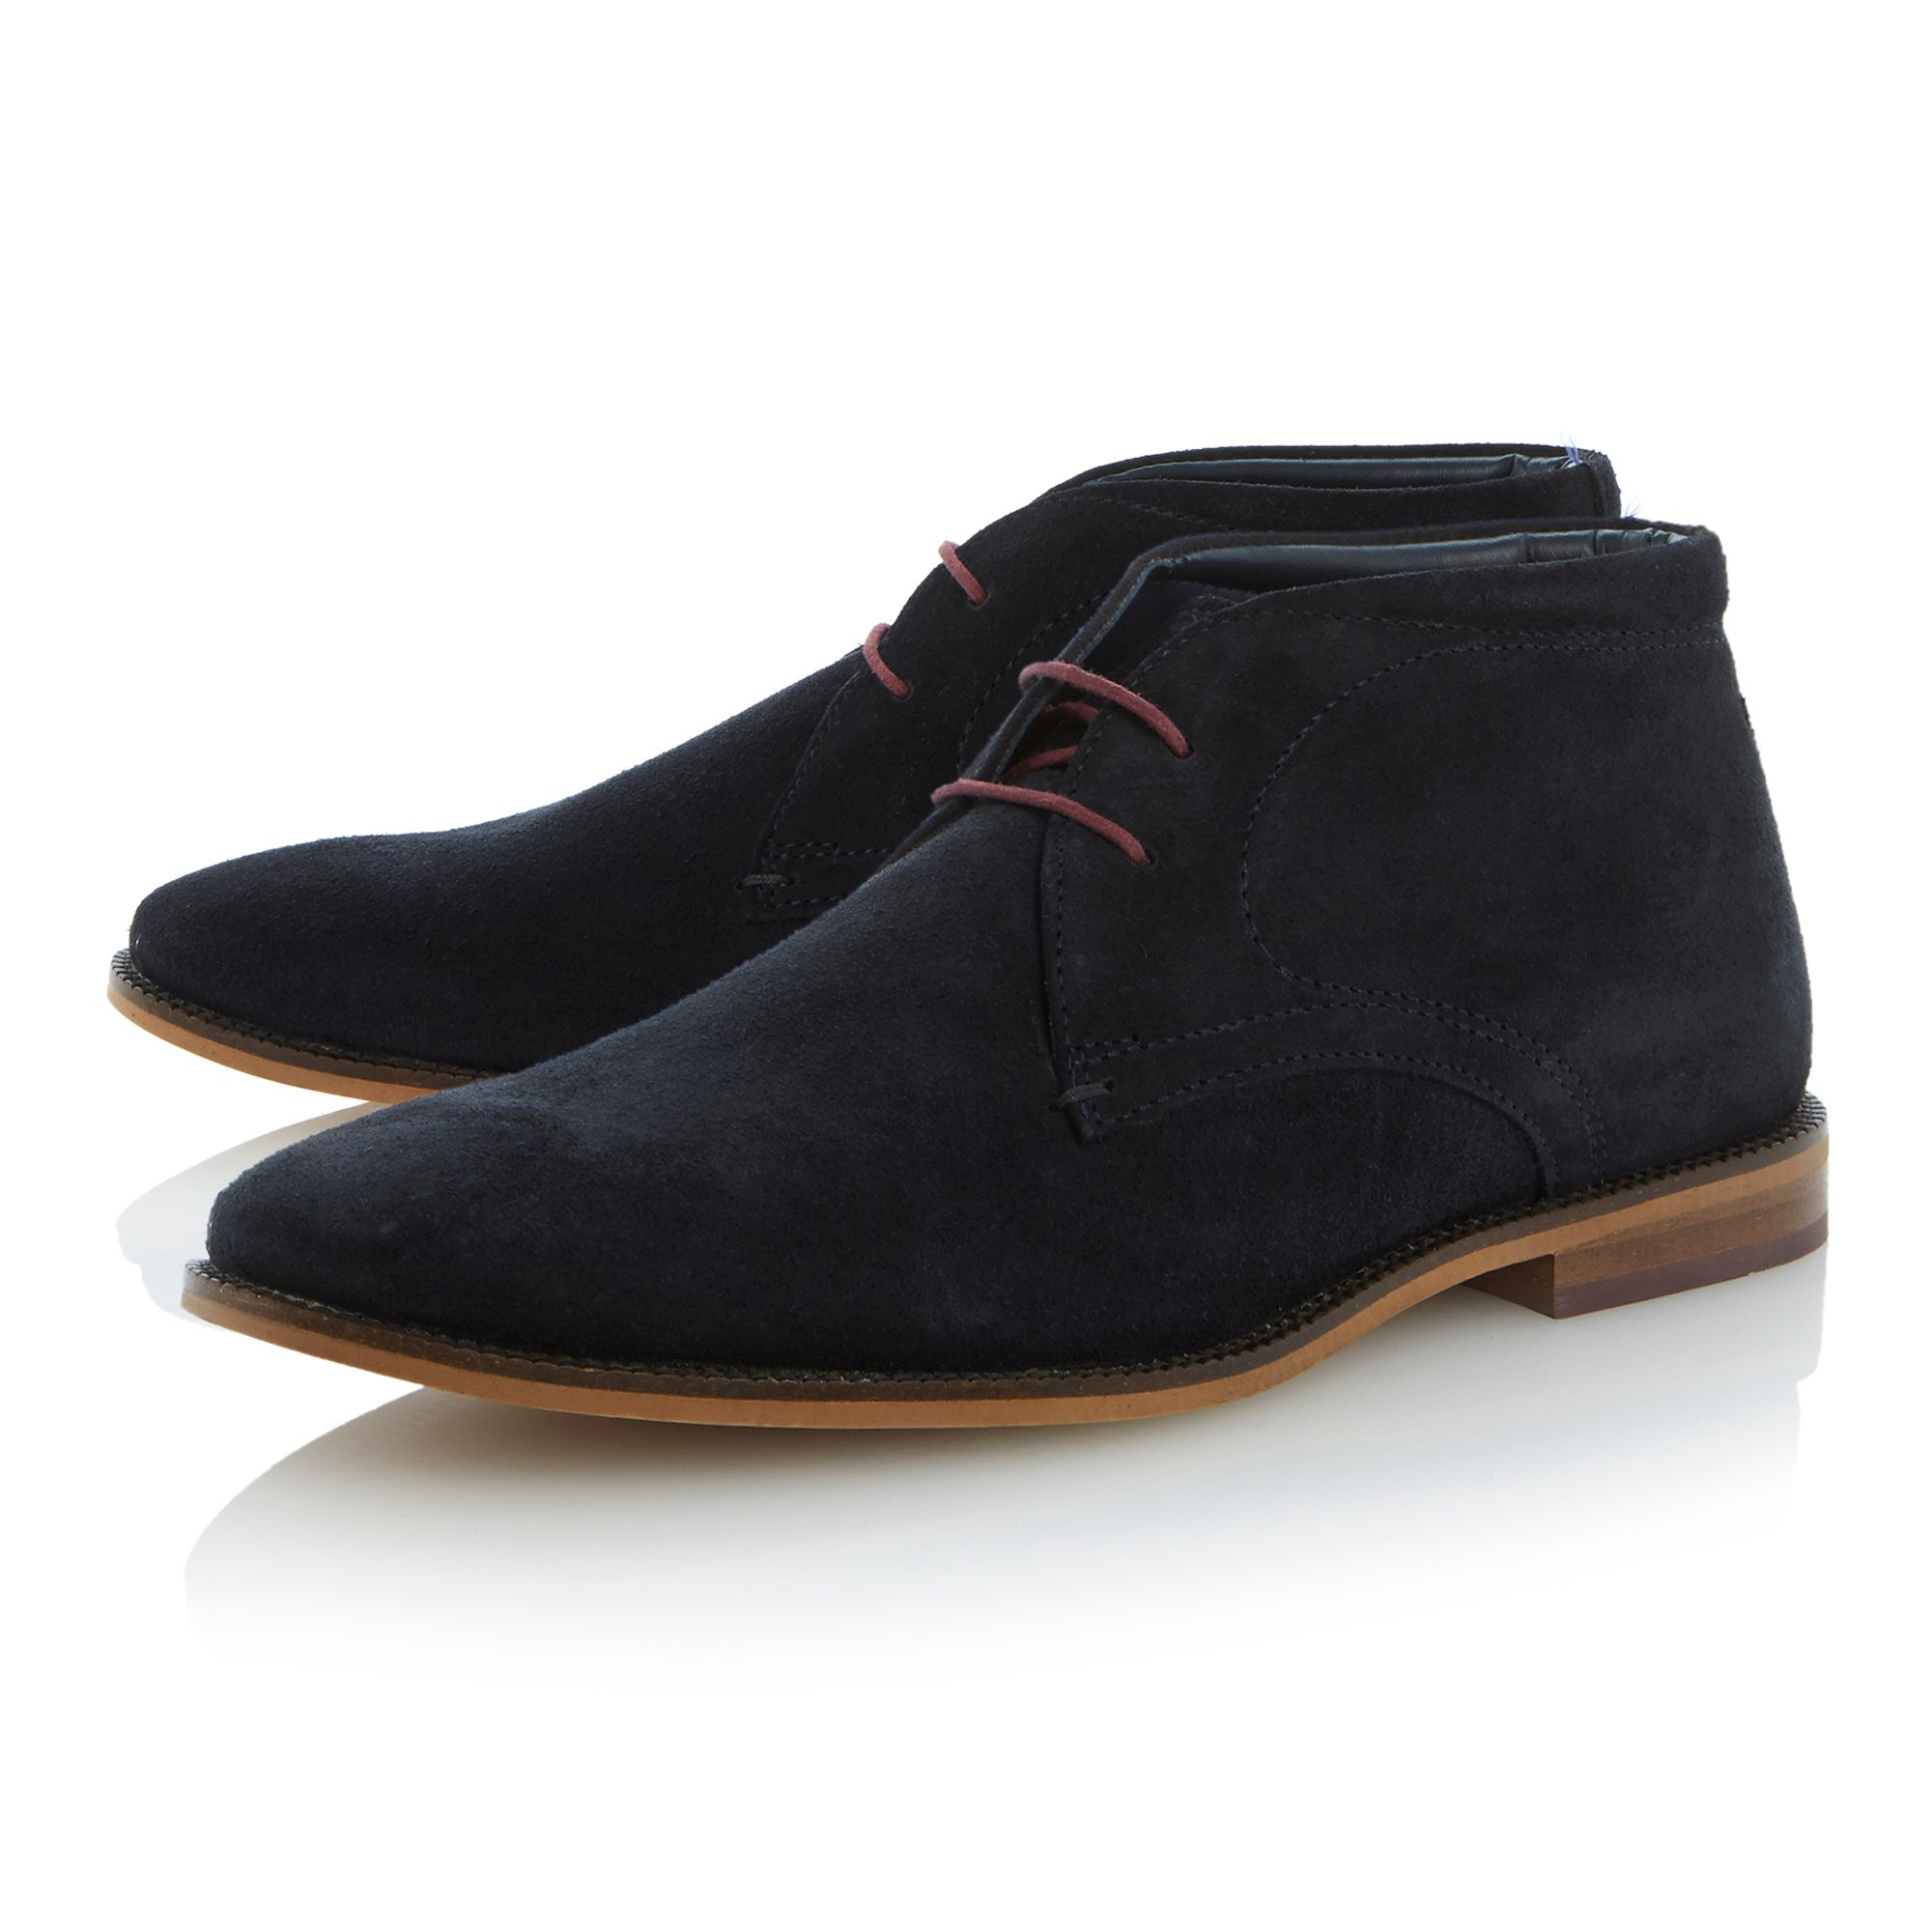 Clark lace up desert boots